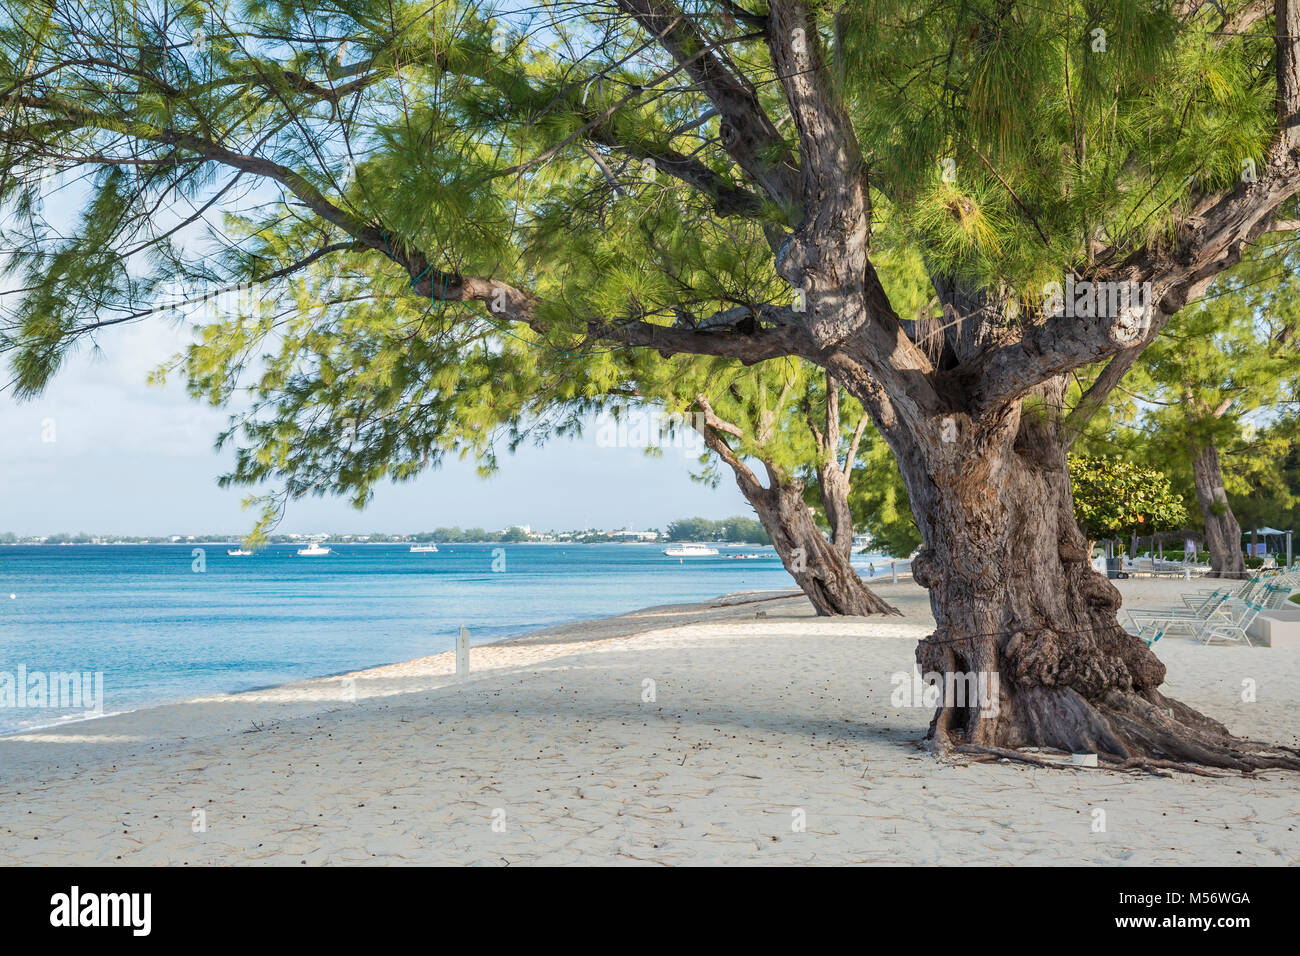 Mighty Casuarina Pine Trees on Seven Mile Beach on Grnd Cayman, Cayman Islands. - Stock Image